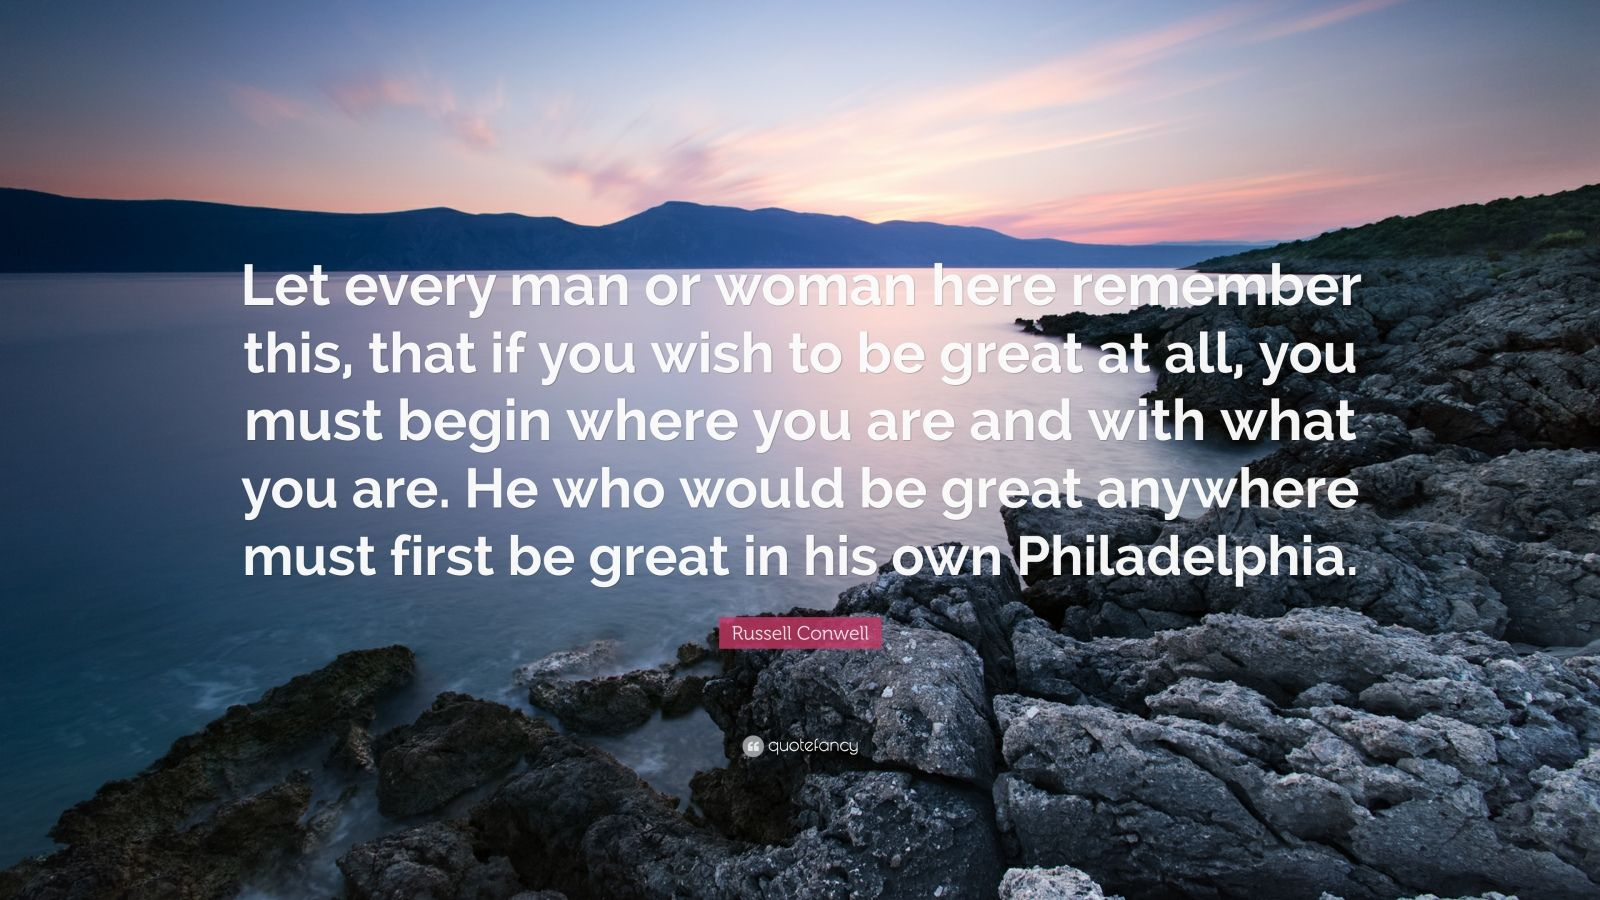 Philadelphia Here I Come Quotes: Russell Conwell Quotes (18 Wallpapers)